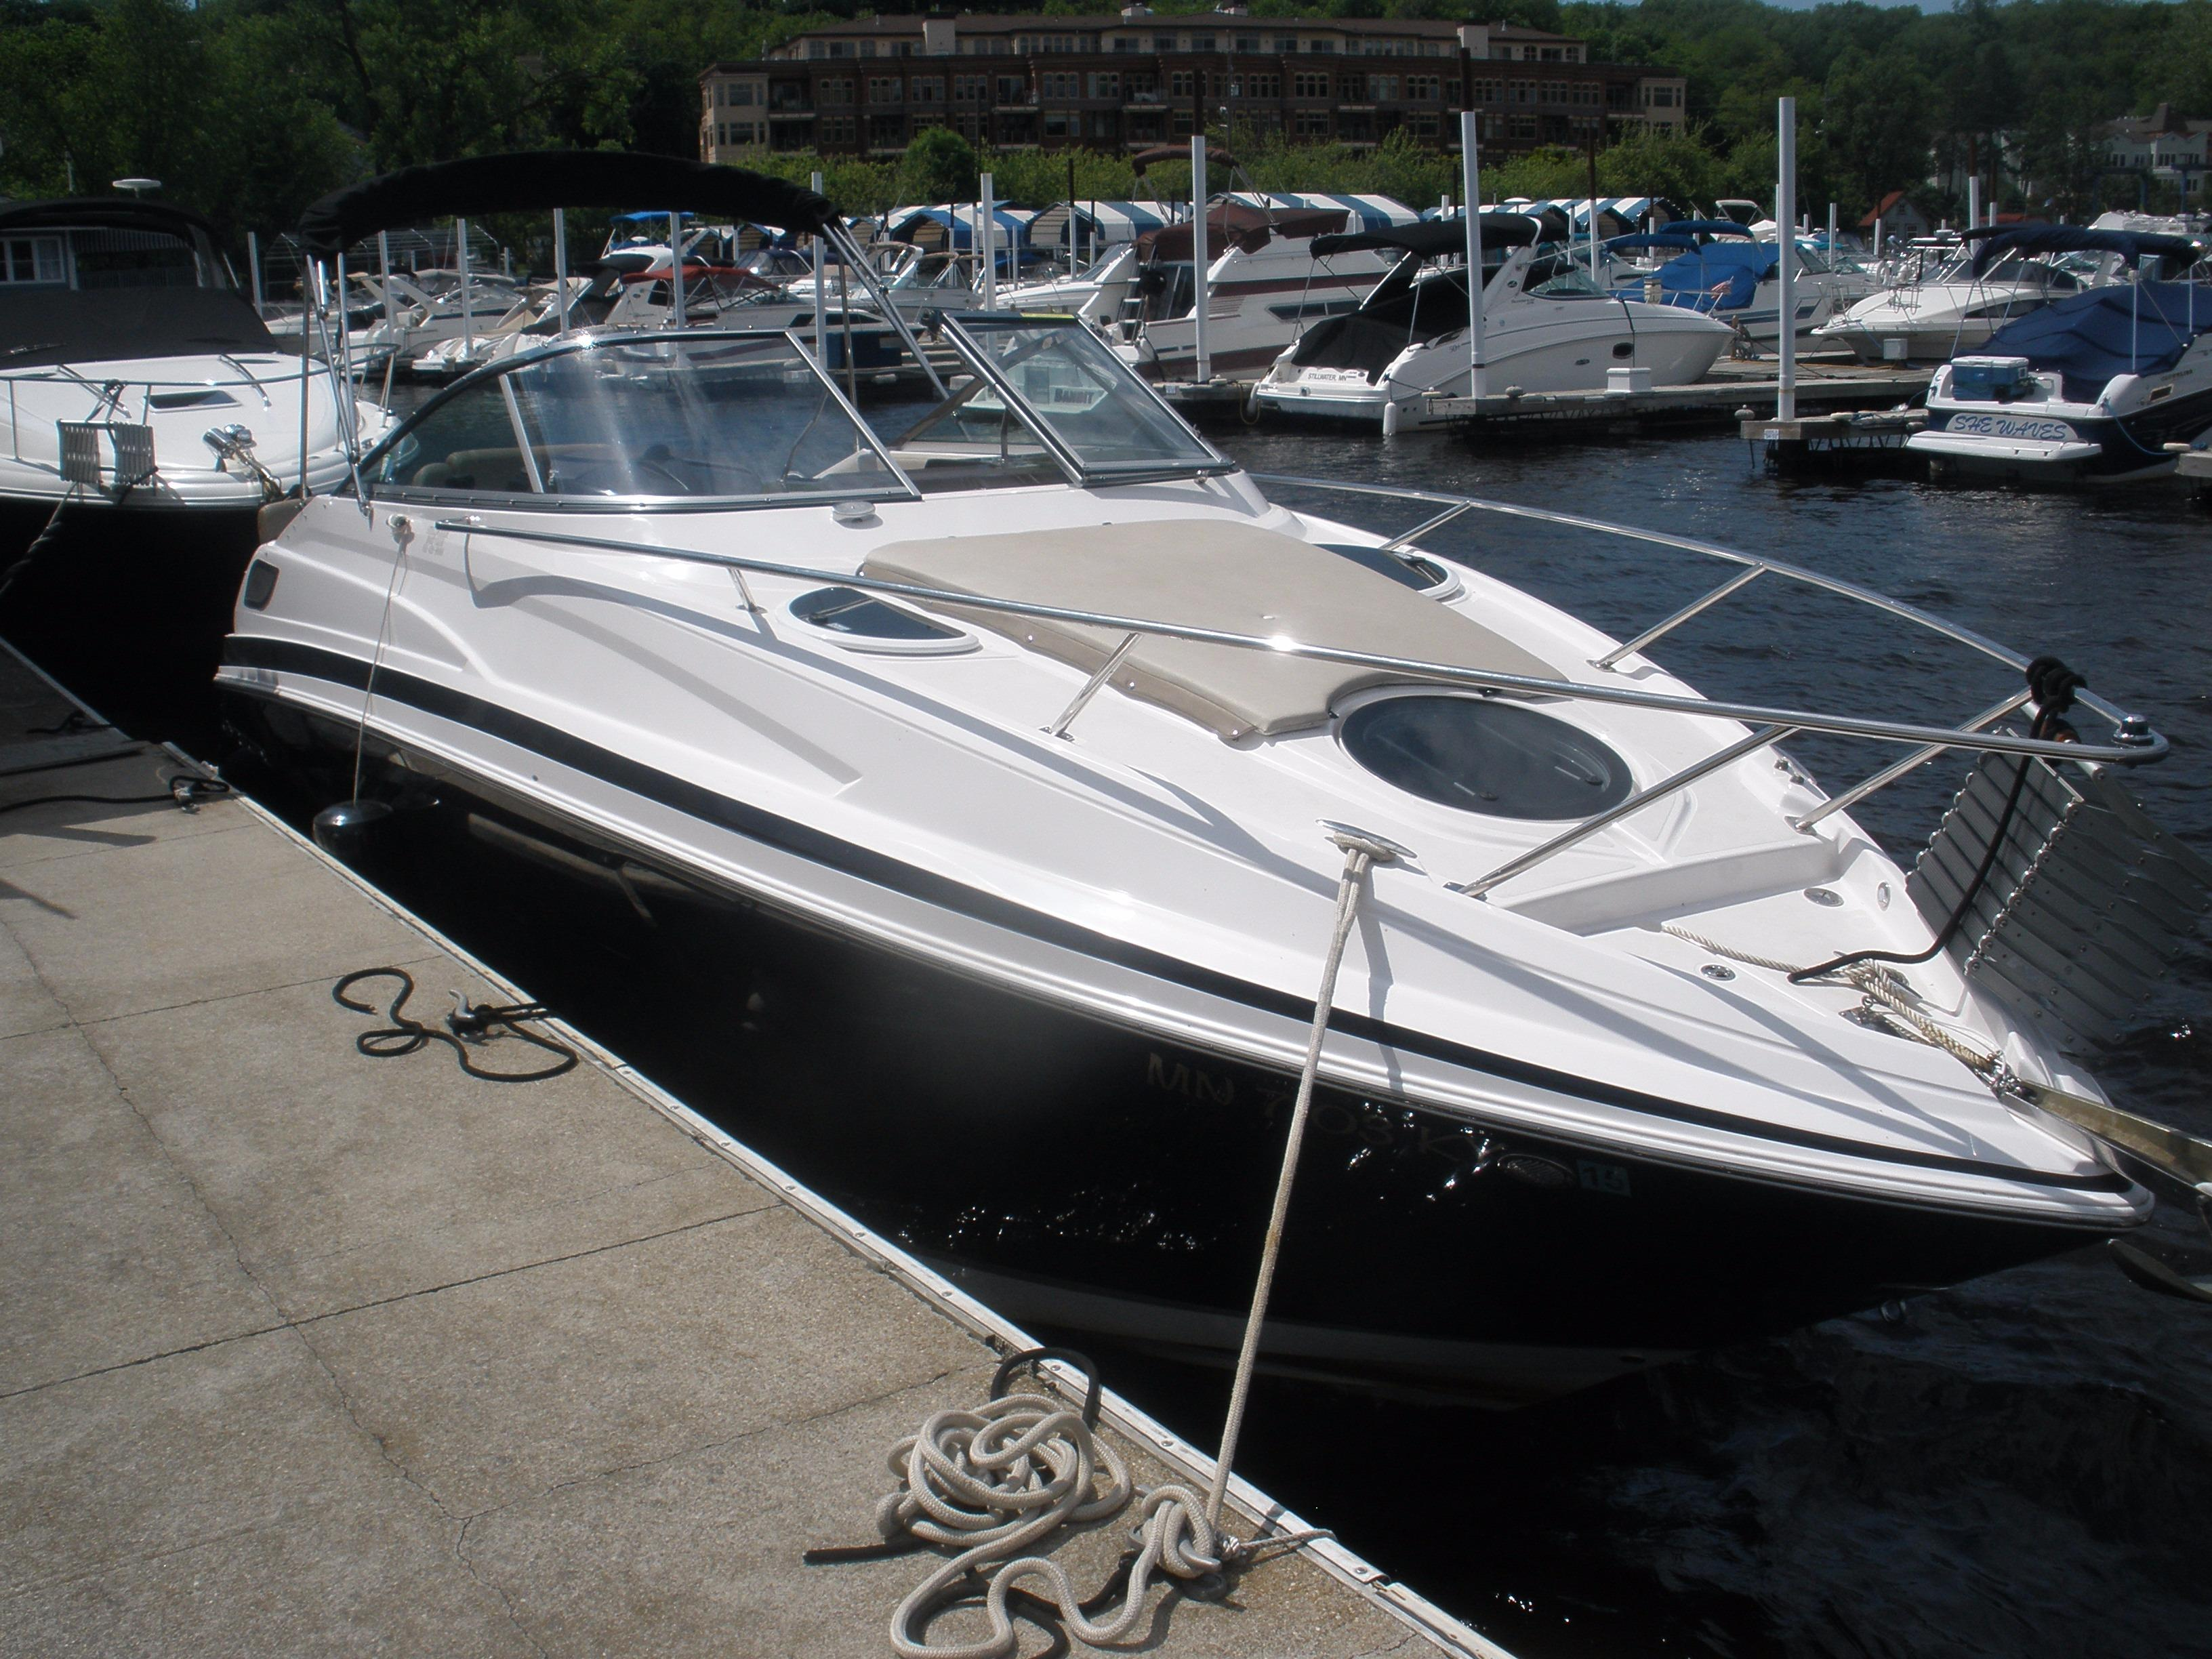 Stillwater (MN) United States  city images : 2013 Regal 28 Express Power Boat For Sale www.yachtworld.com